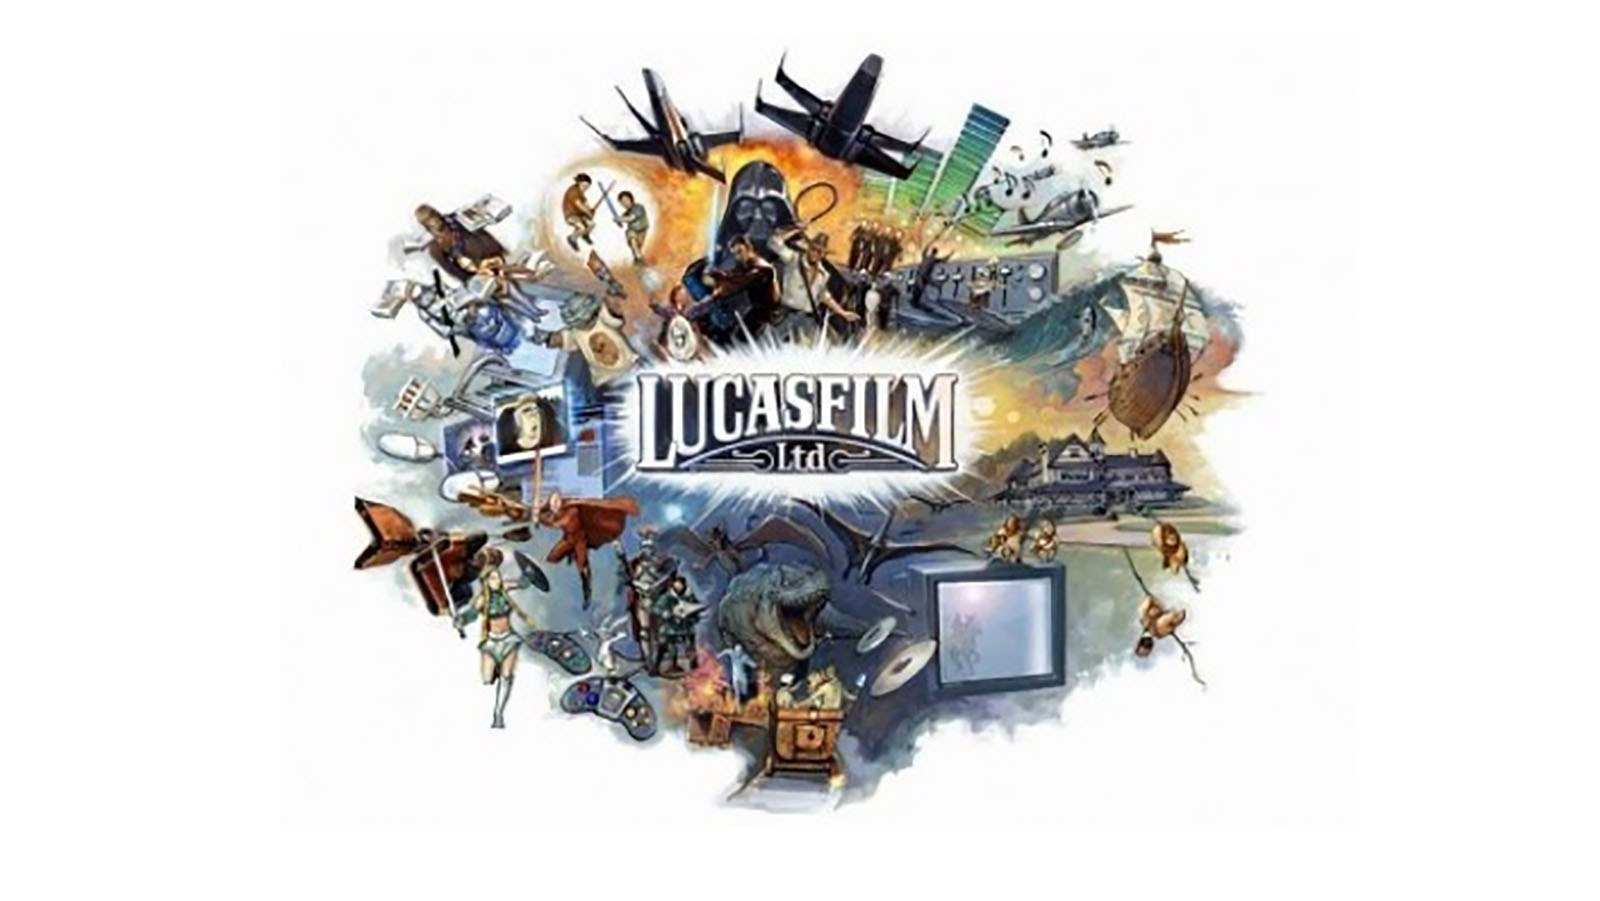 Students Learn About Internship Opportunities at Lucasfilm's Jedi Academy Program - Hero image